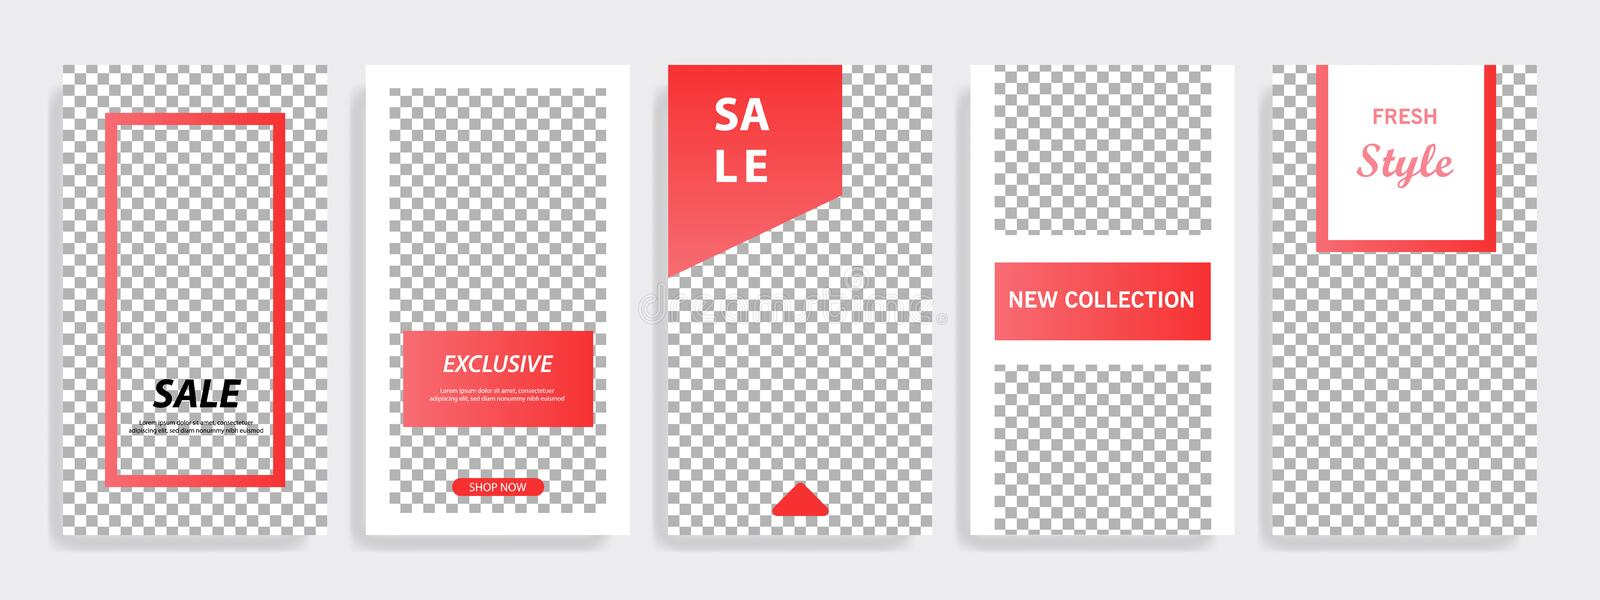 Red minimal geometric Instagram layout banner template. Multipurpose five vertical banner background design template layout. Suitable for Instagram social media royalty free illustration